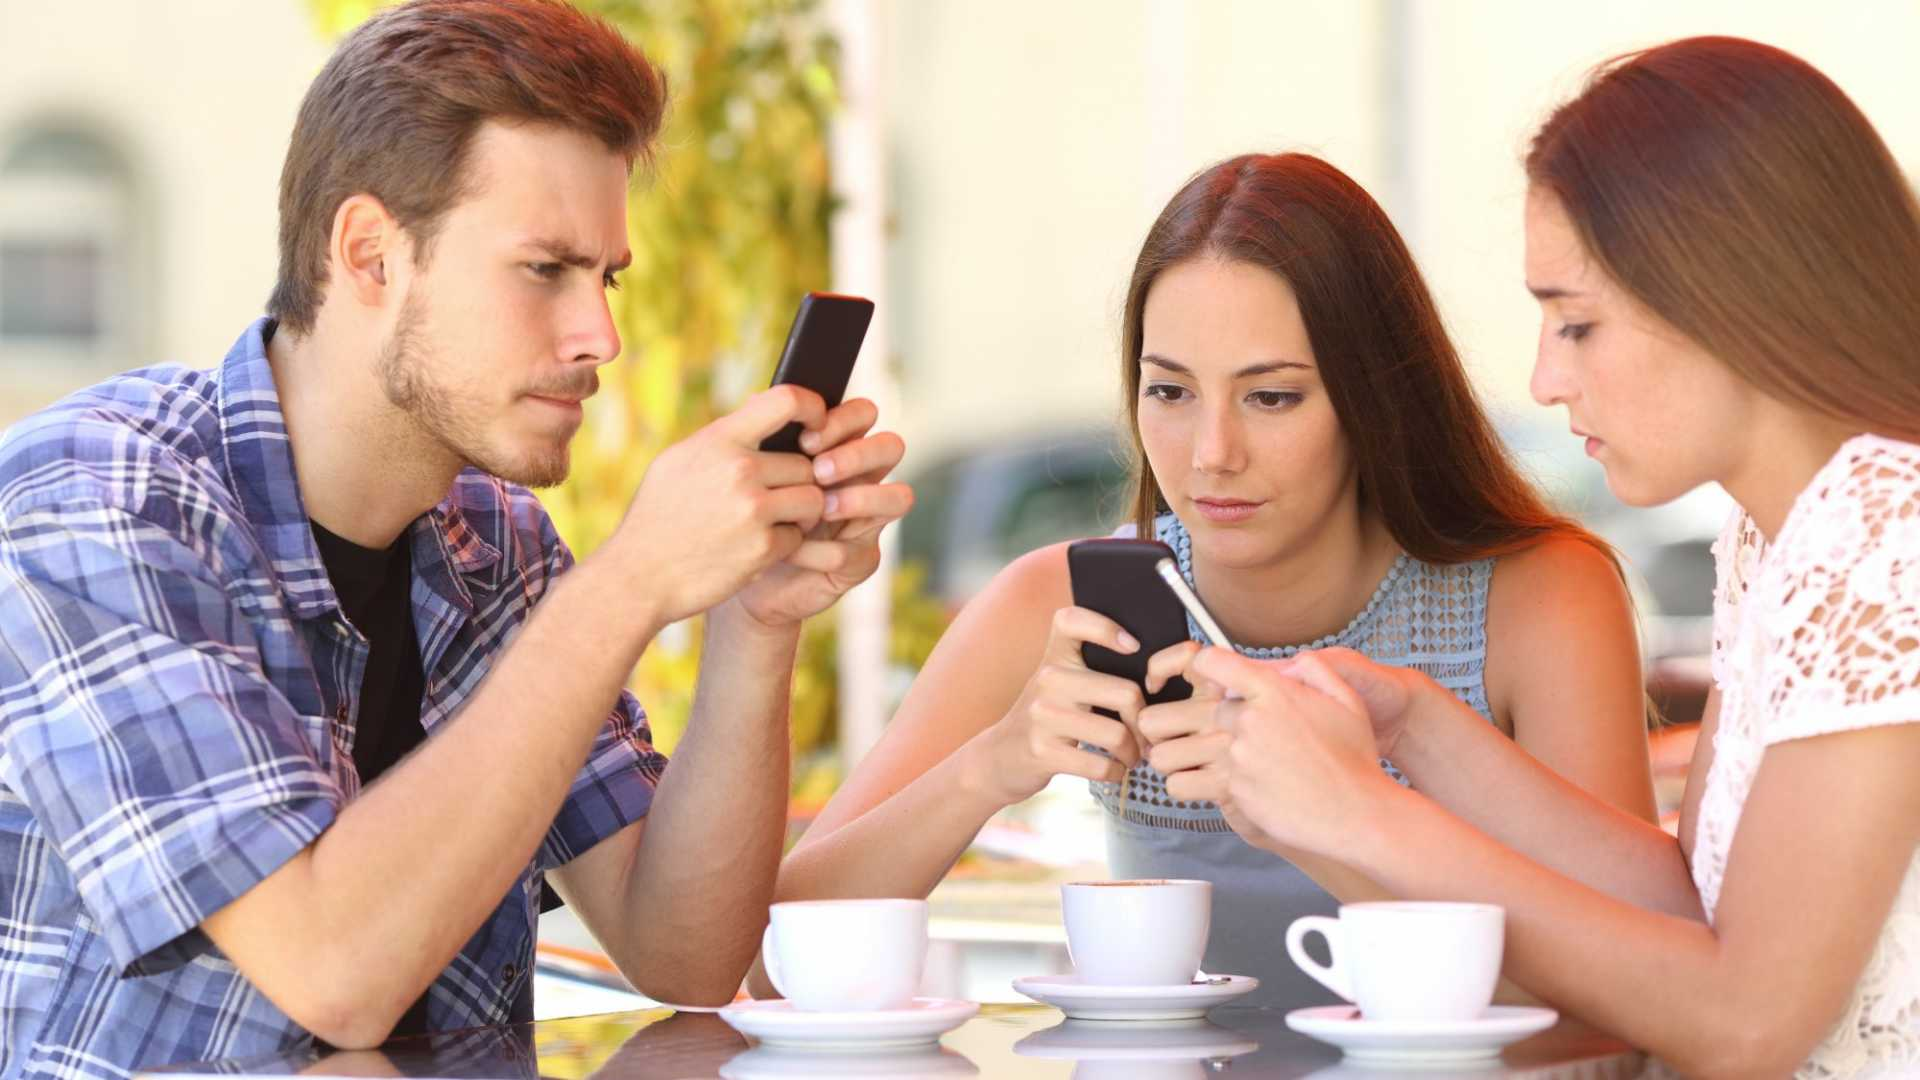 Studies Show Social Media Is Ruining Lives and Careers. Here's How to Protect Yourself